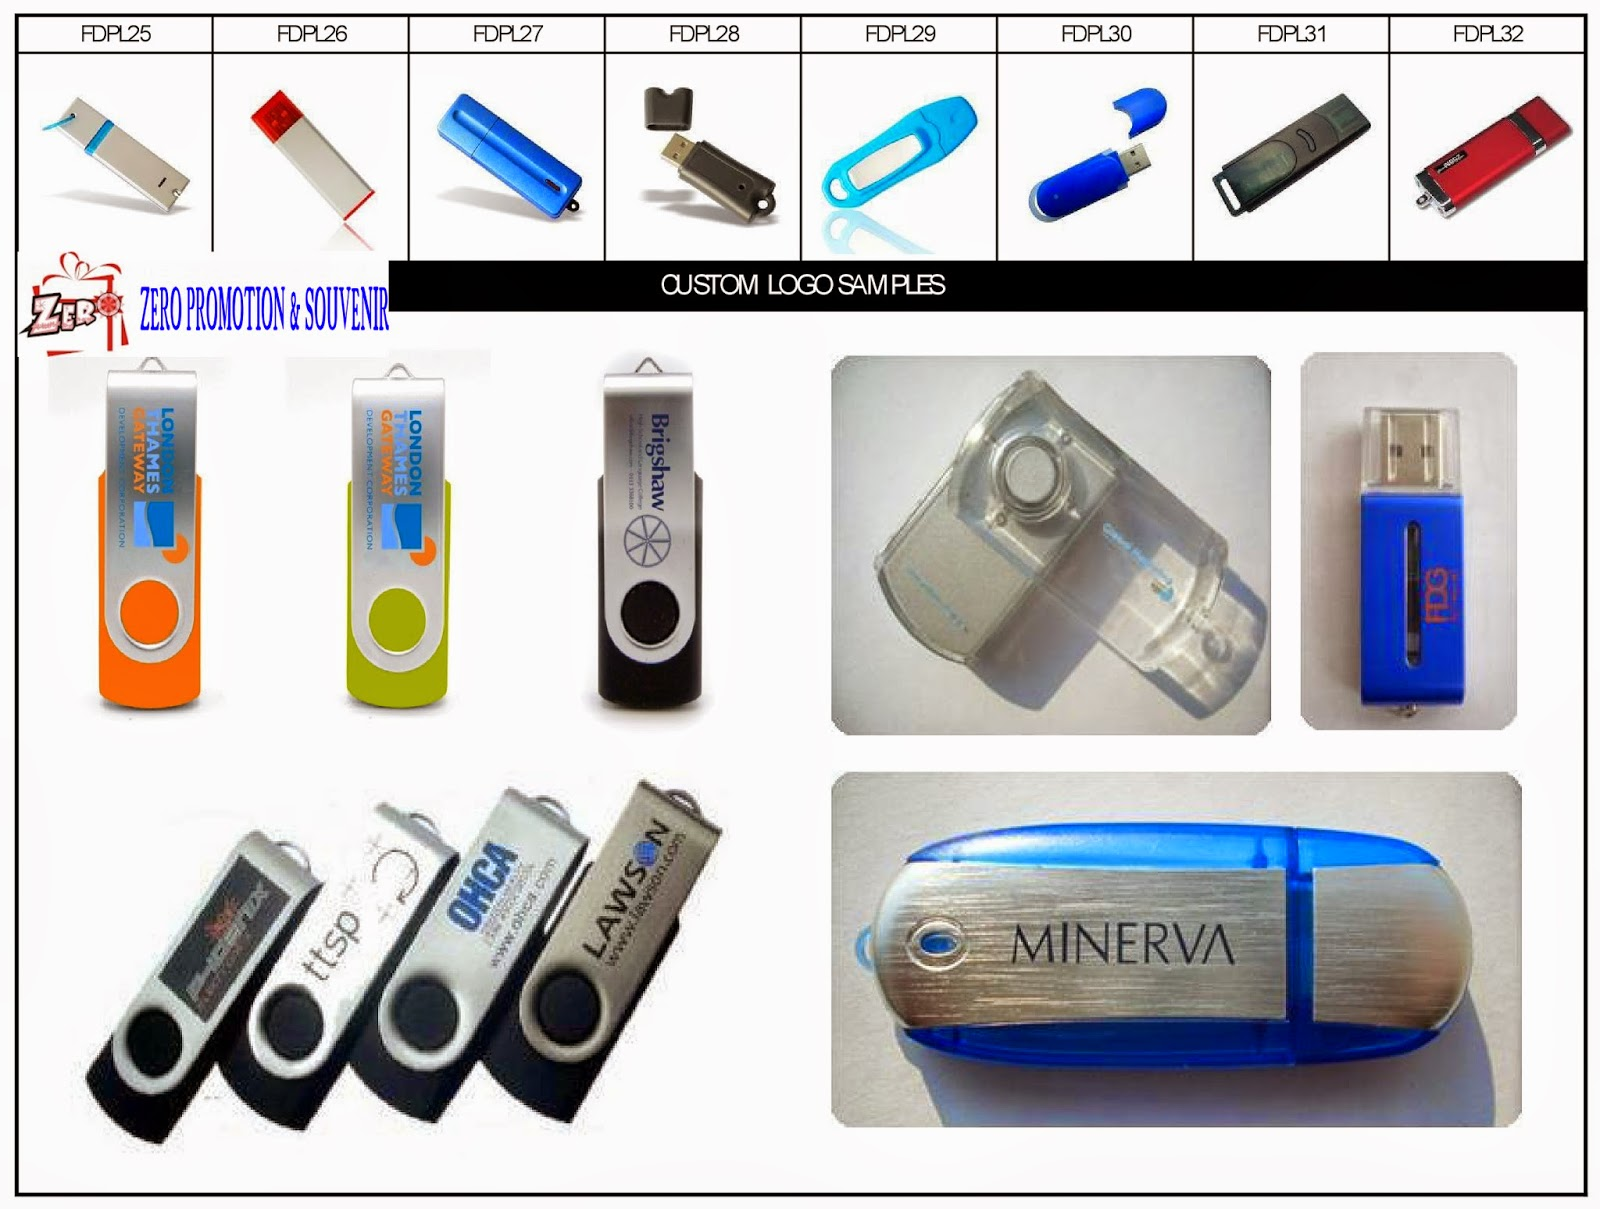 Jual Flash Disk Promosi